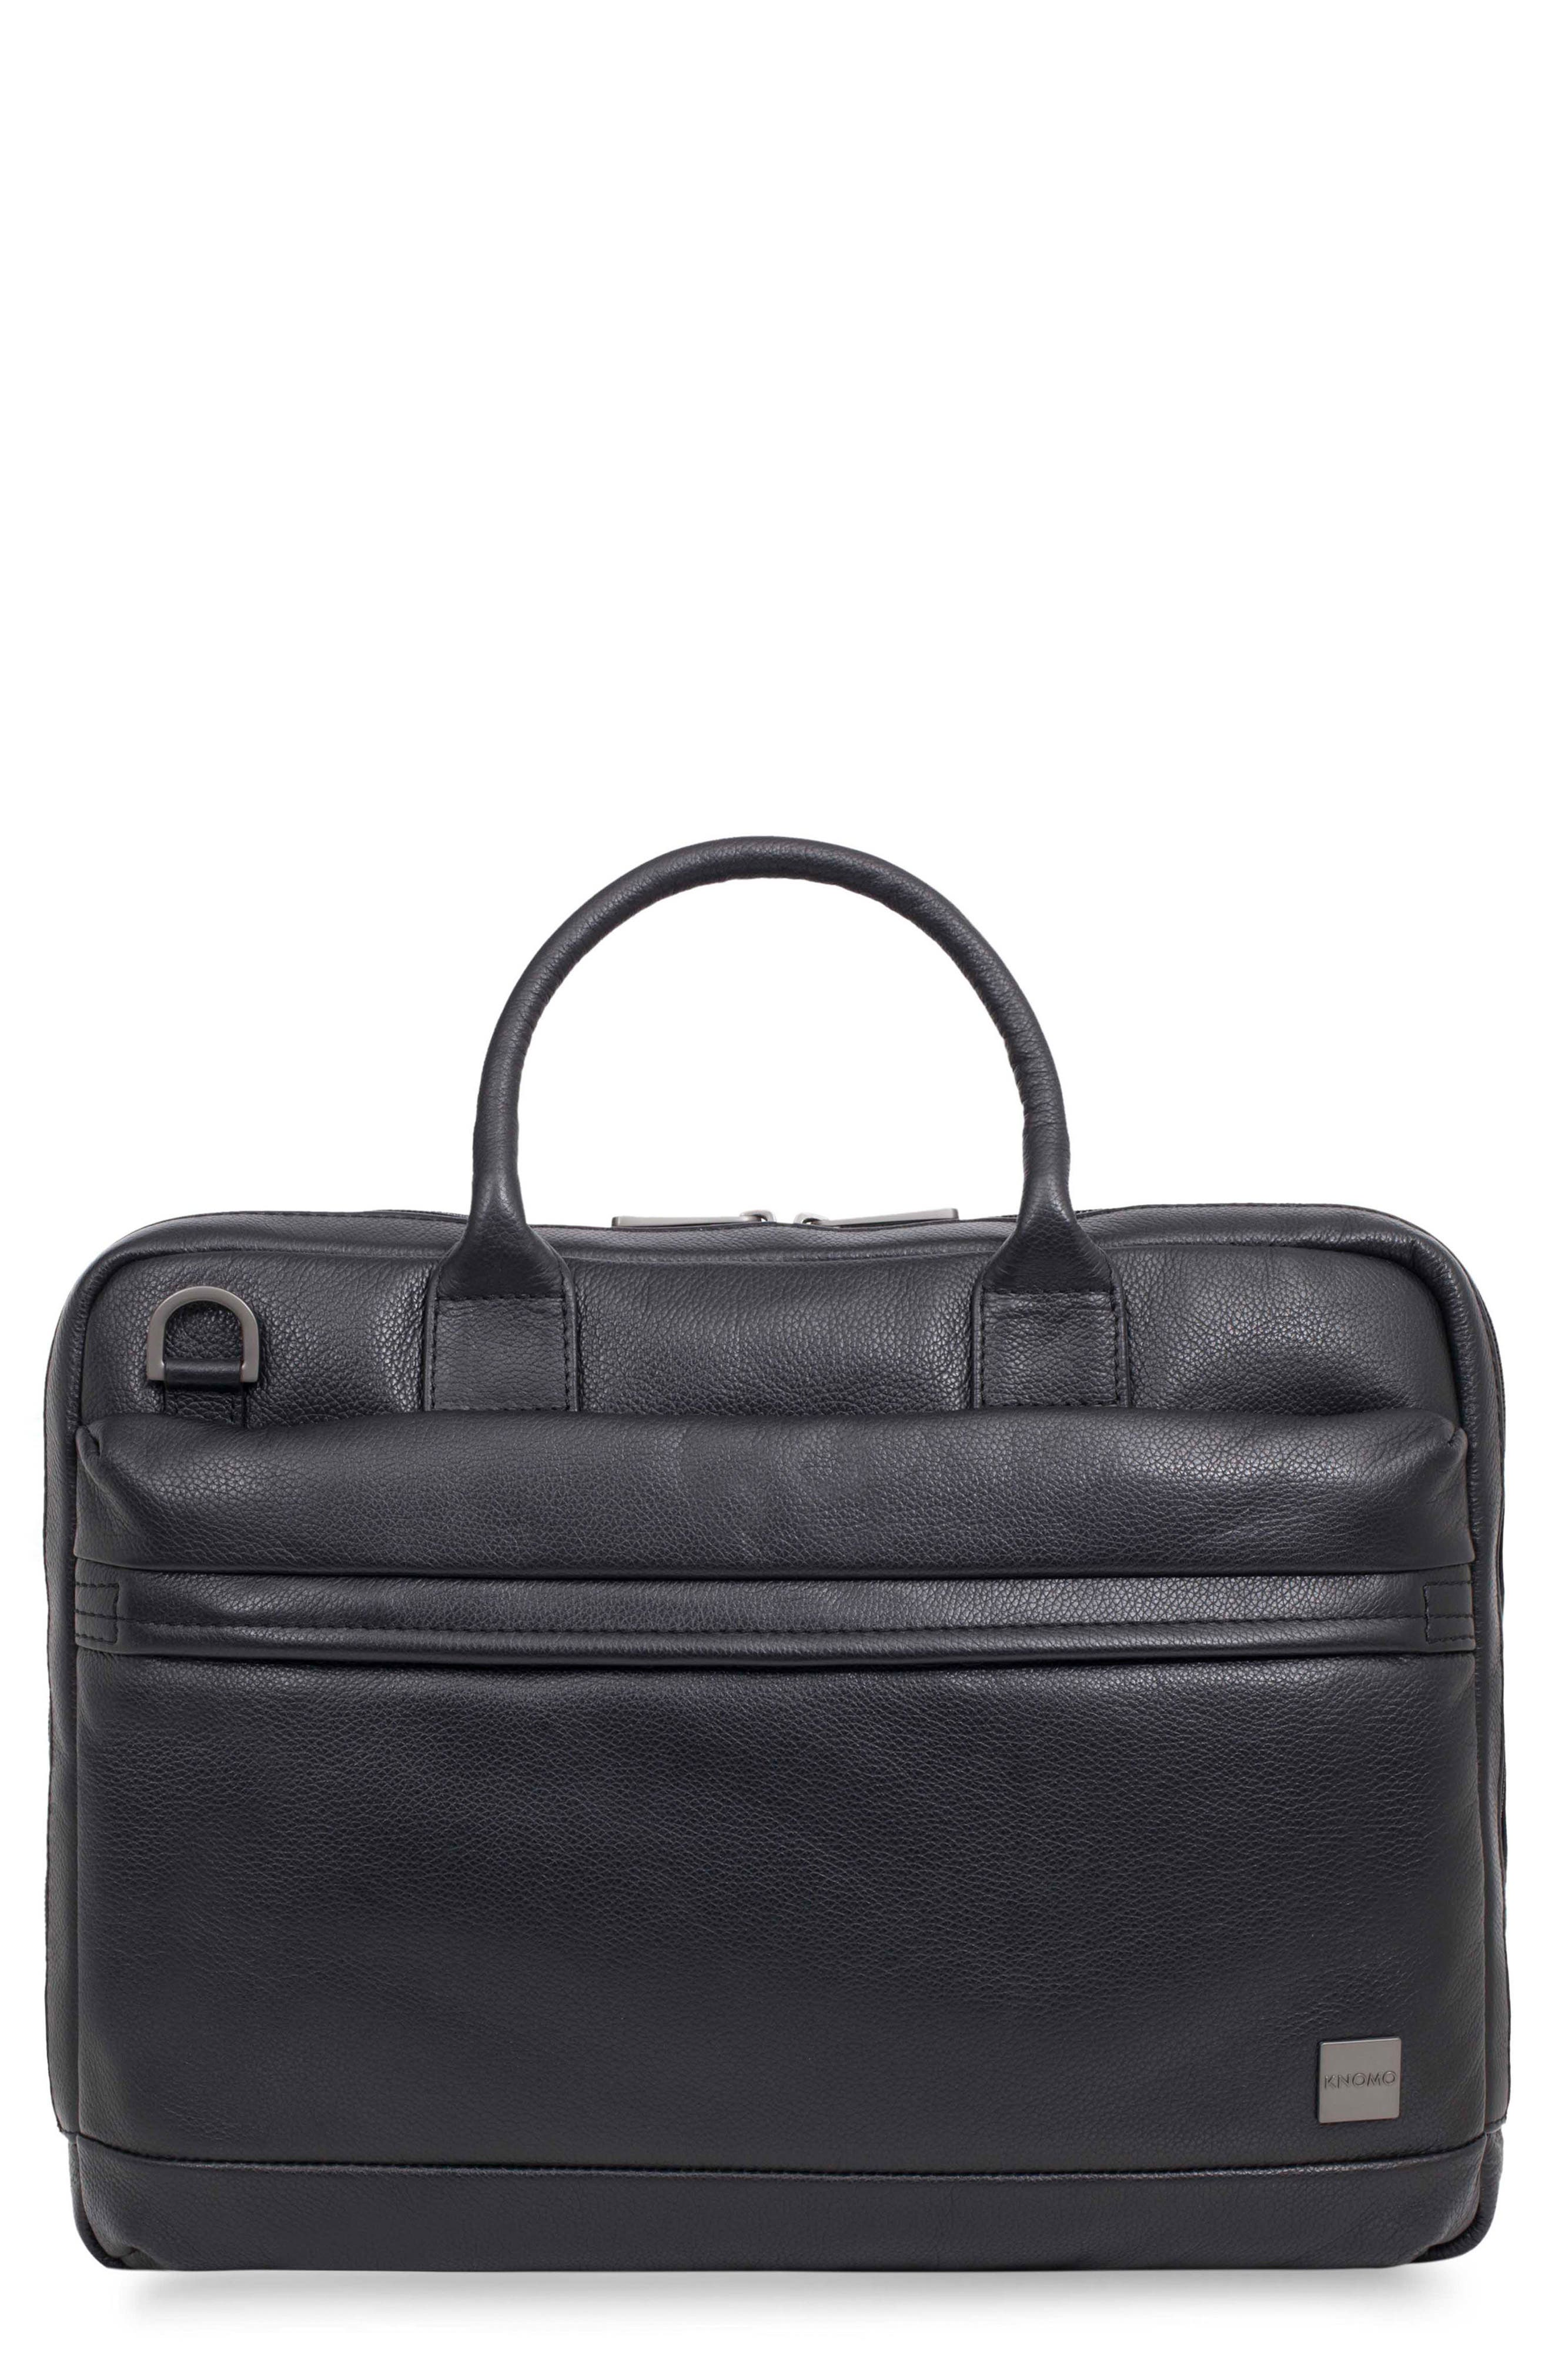 Barbican Foster Leather Briefcase,                             Main thumbnail 1, color,                             BLACK